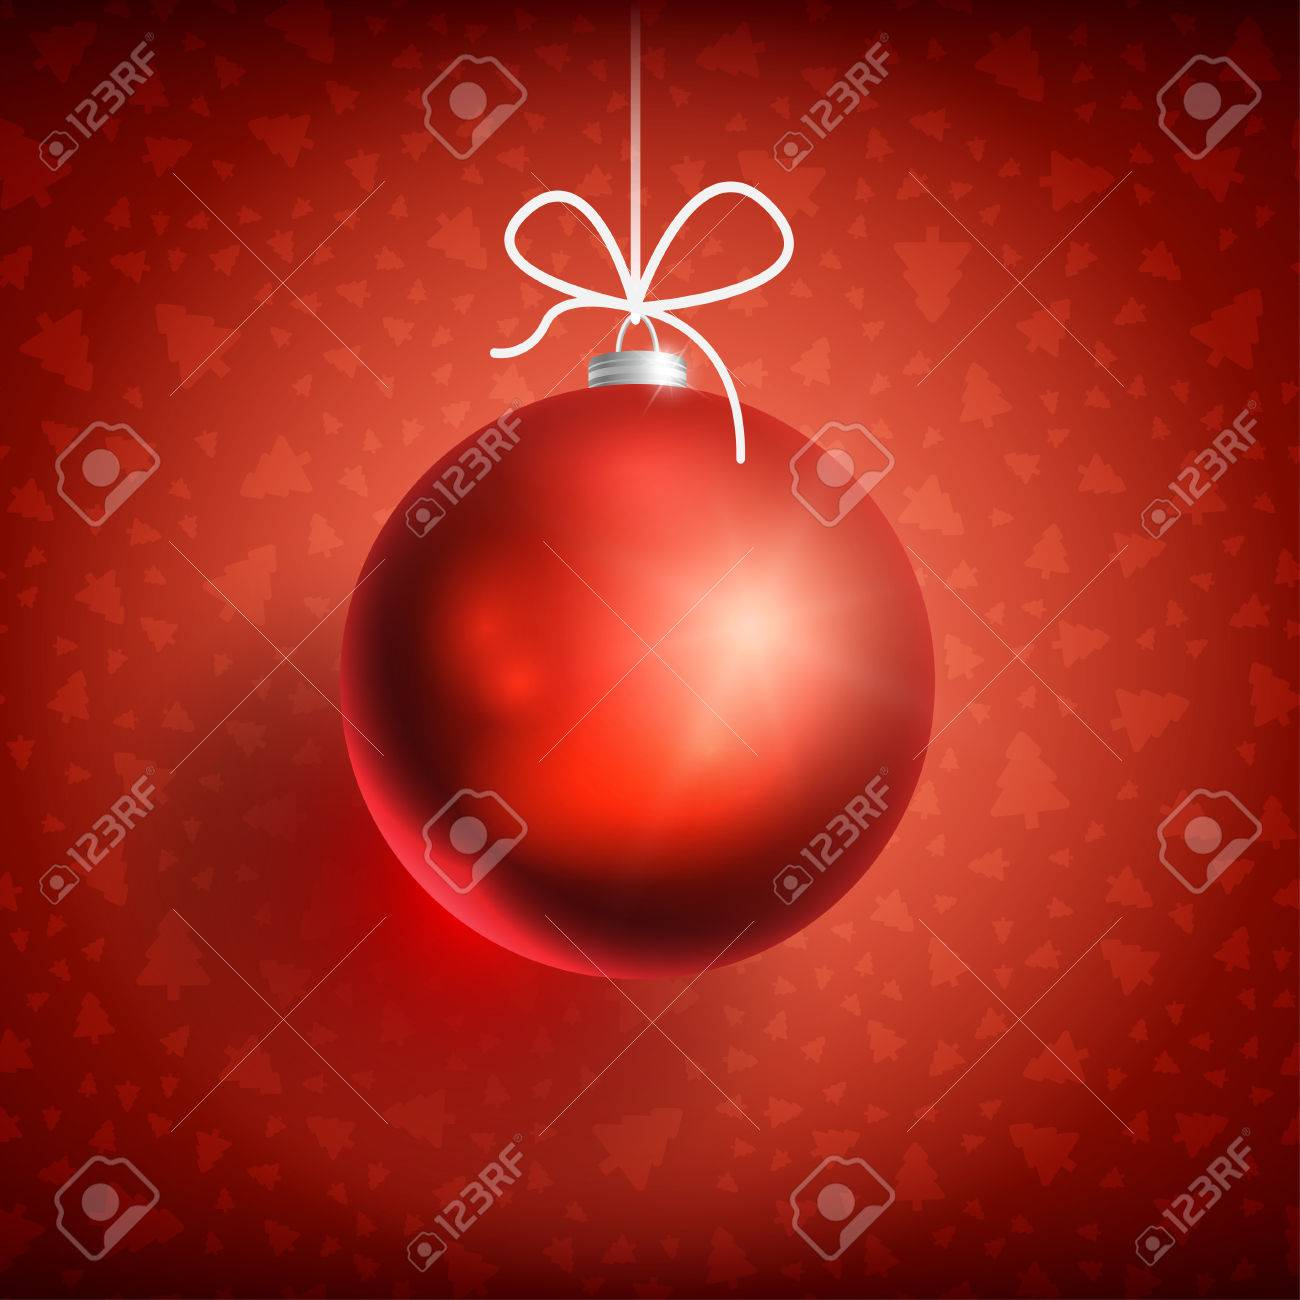 Red Christmas Ball On Background Related Ornaments Objects Color Greeting